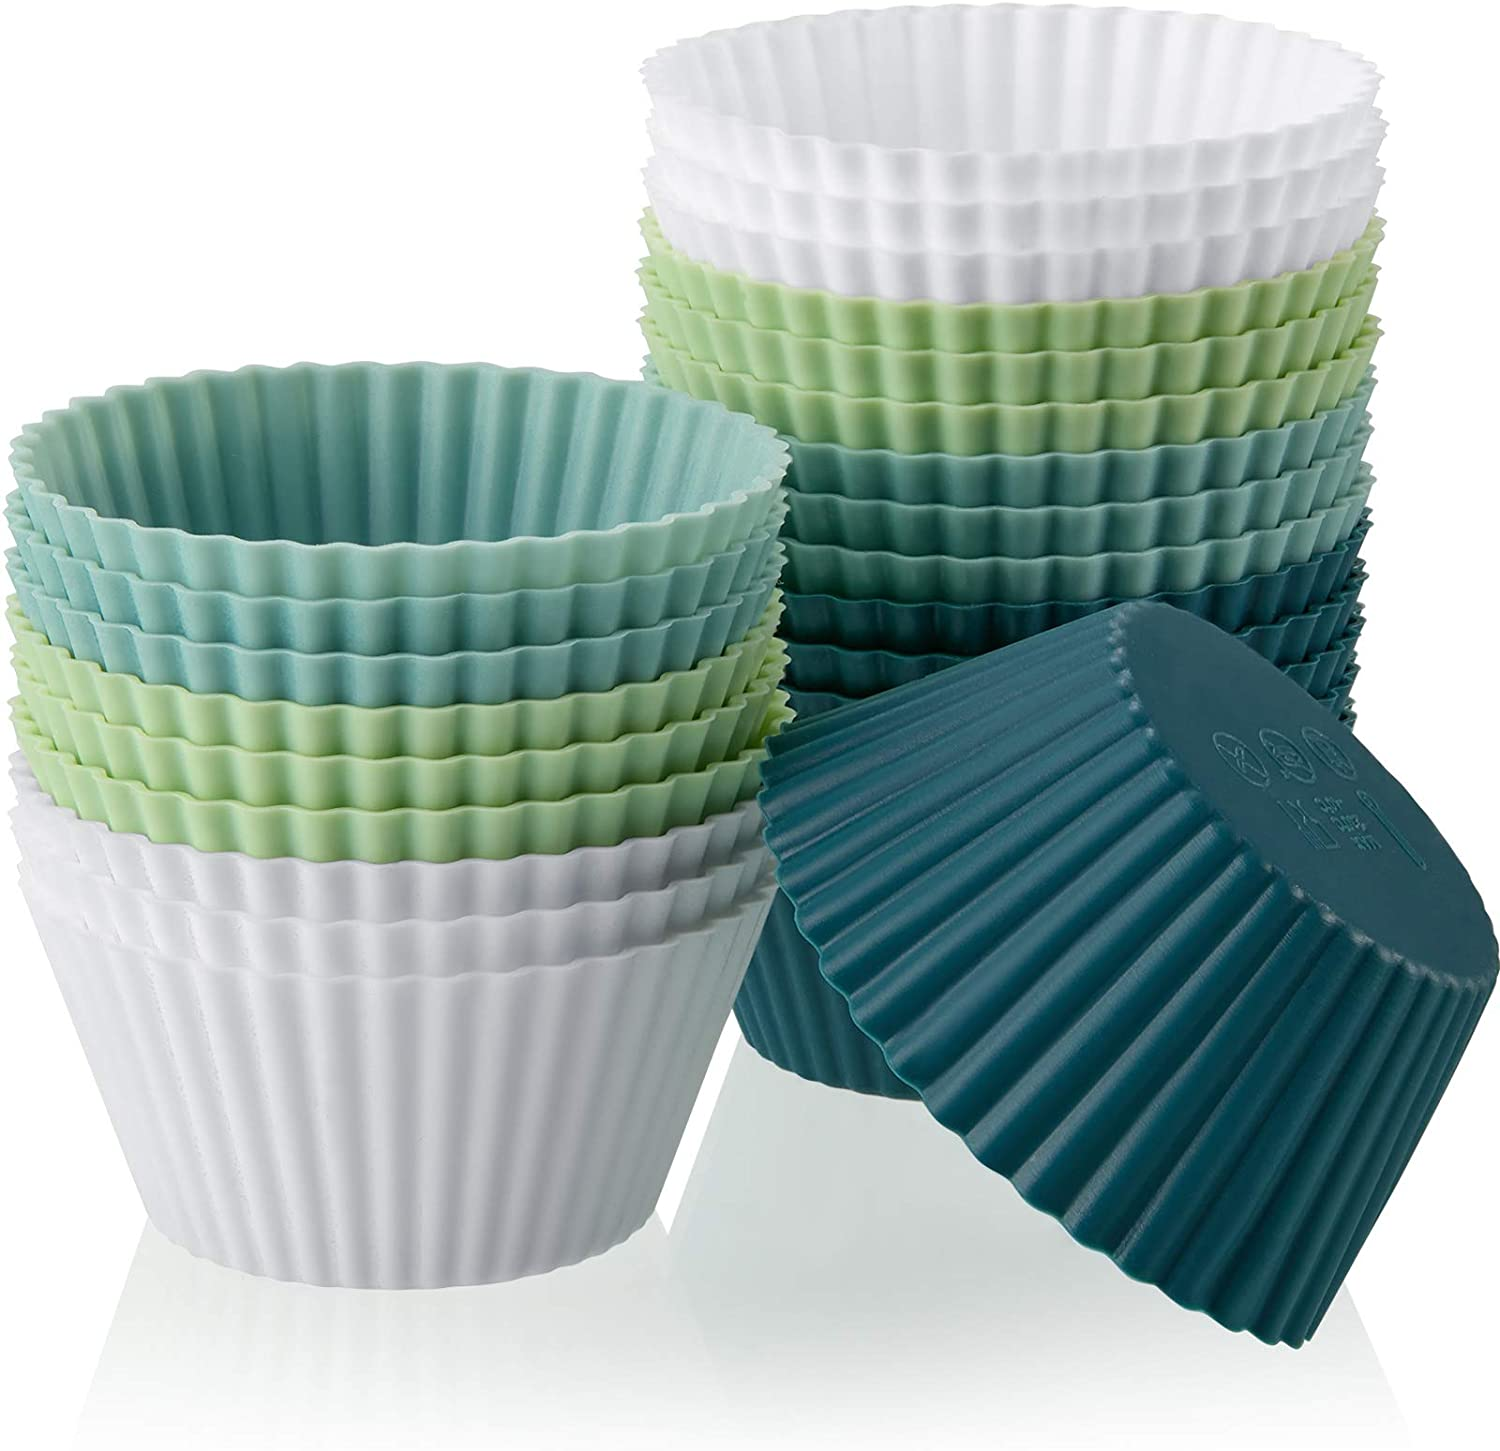 Silicone Baking Cups Max sold out 82% OFF Cupcake Liners Muffin Reusable Cup